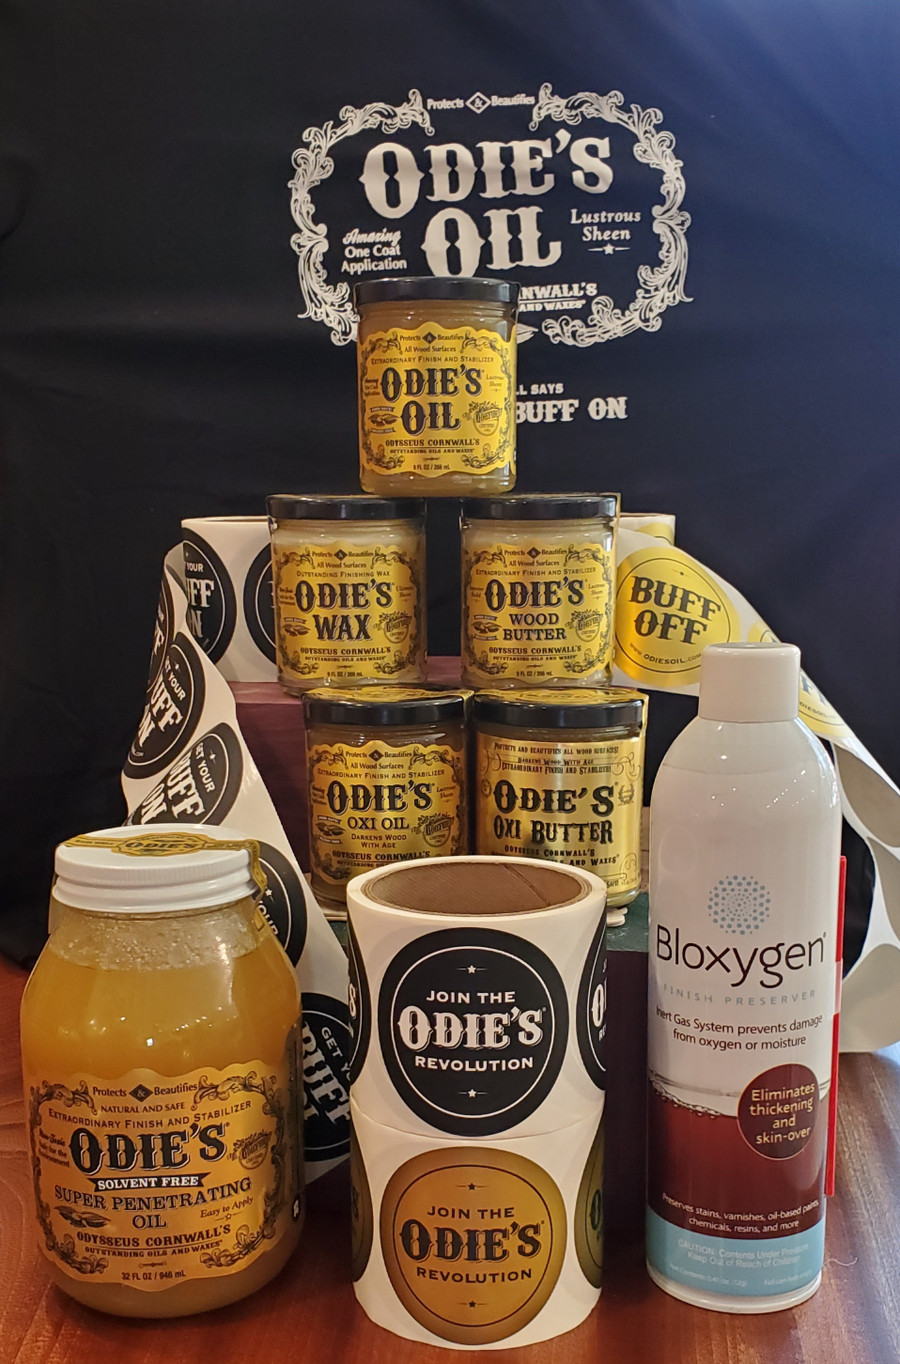 Big Kit Special - Selection of Odie's Finishes Plus FREE Oxi Butter, FREE Bloxygen, and FREE T-shirt - Limited Offer